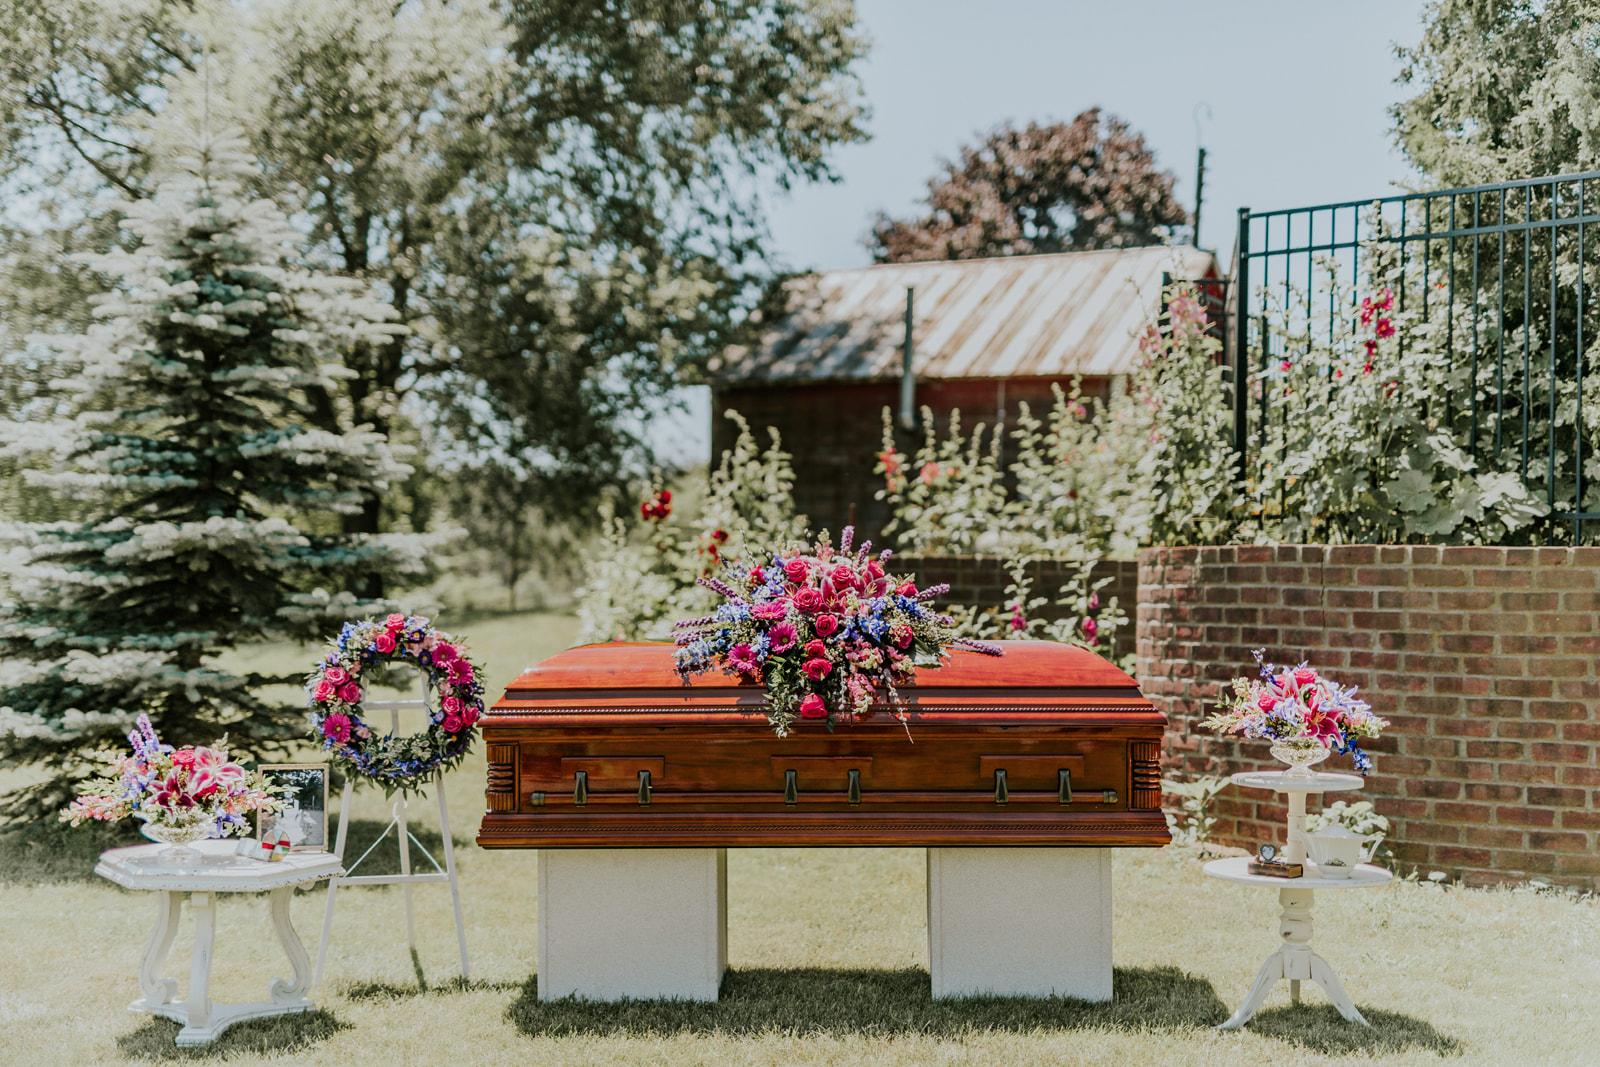 This collection features hot pink roses, stargazer lilies, gerbera, iris, snapdragons, liatris, and blue delphinium. The bright blues, purples, and hot pinks are reminiscent of a spring garden. The collection includes a casket spray, two complementing compotes, an urn arrangement, and a wreath.